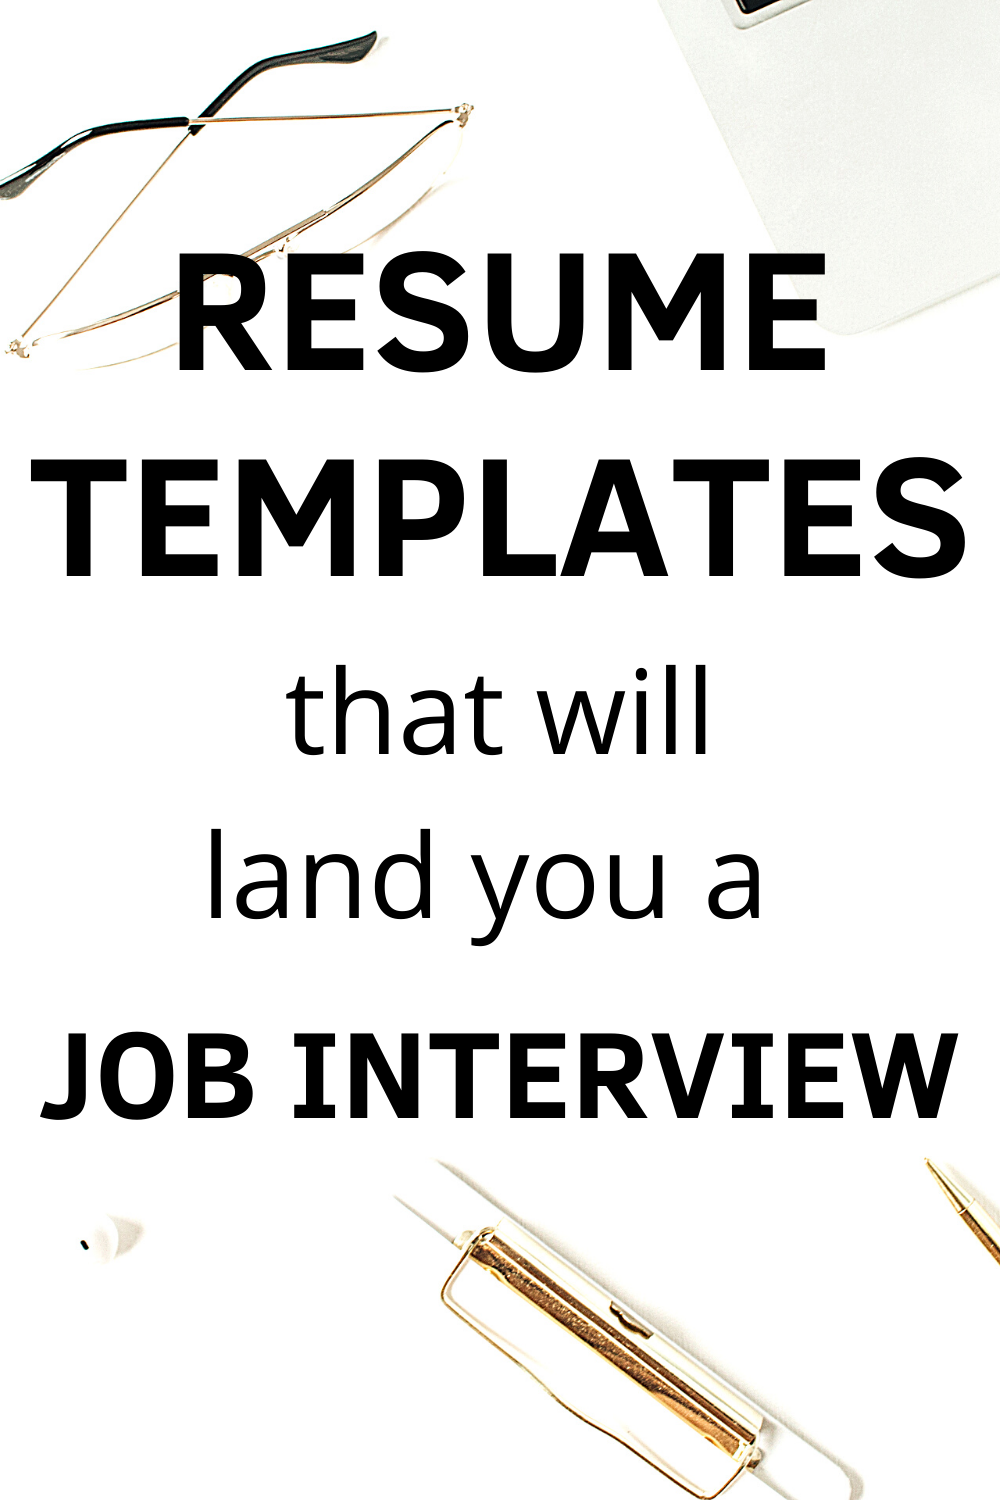 Pin on Interview tips